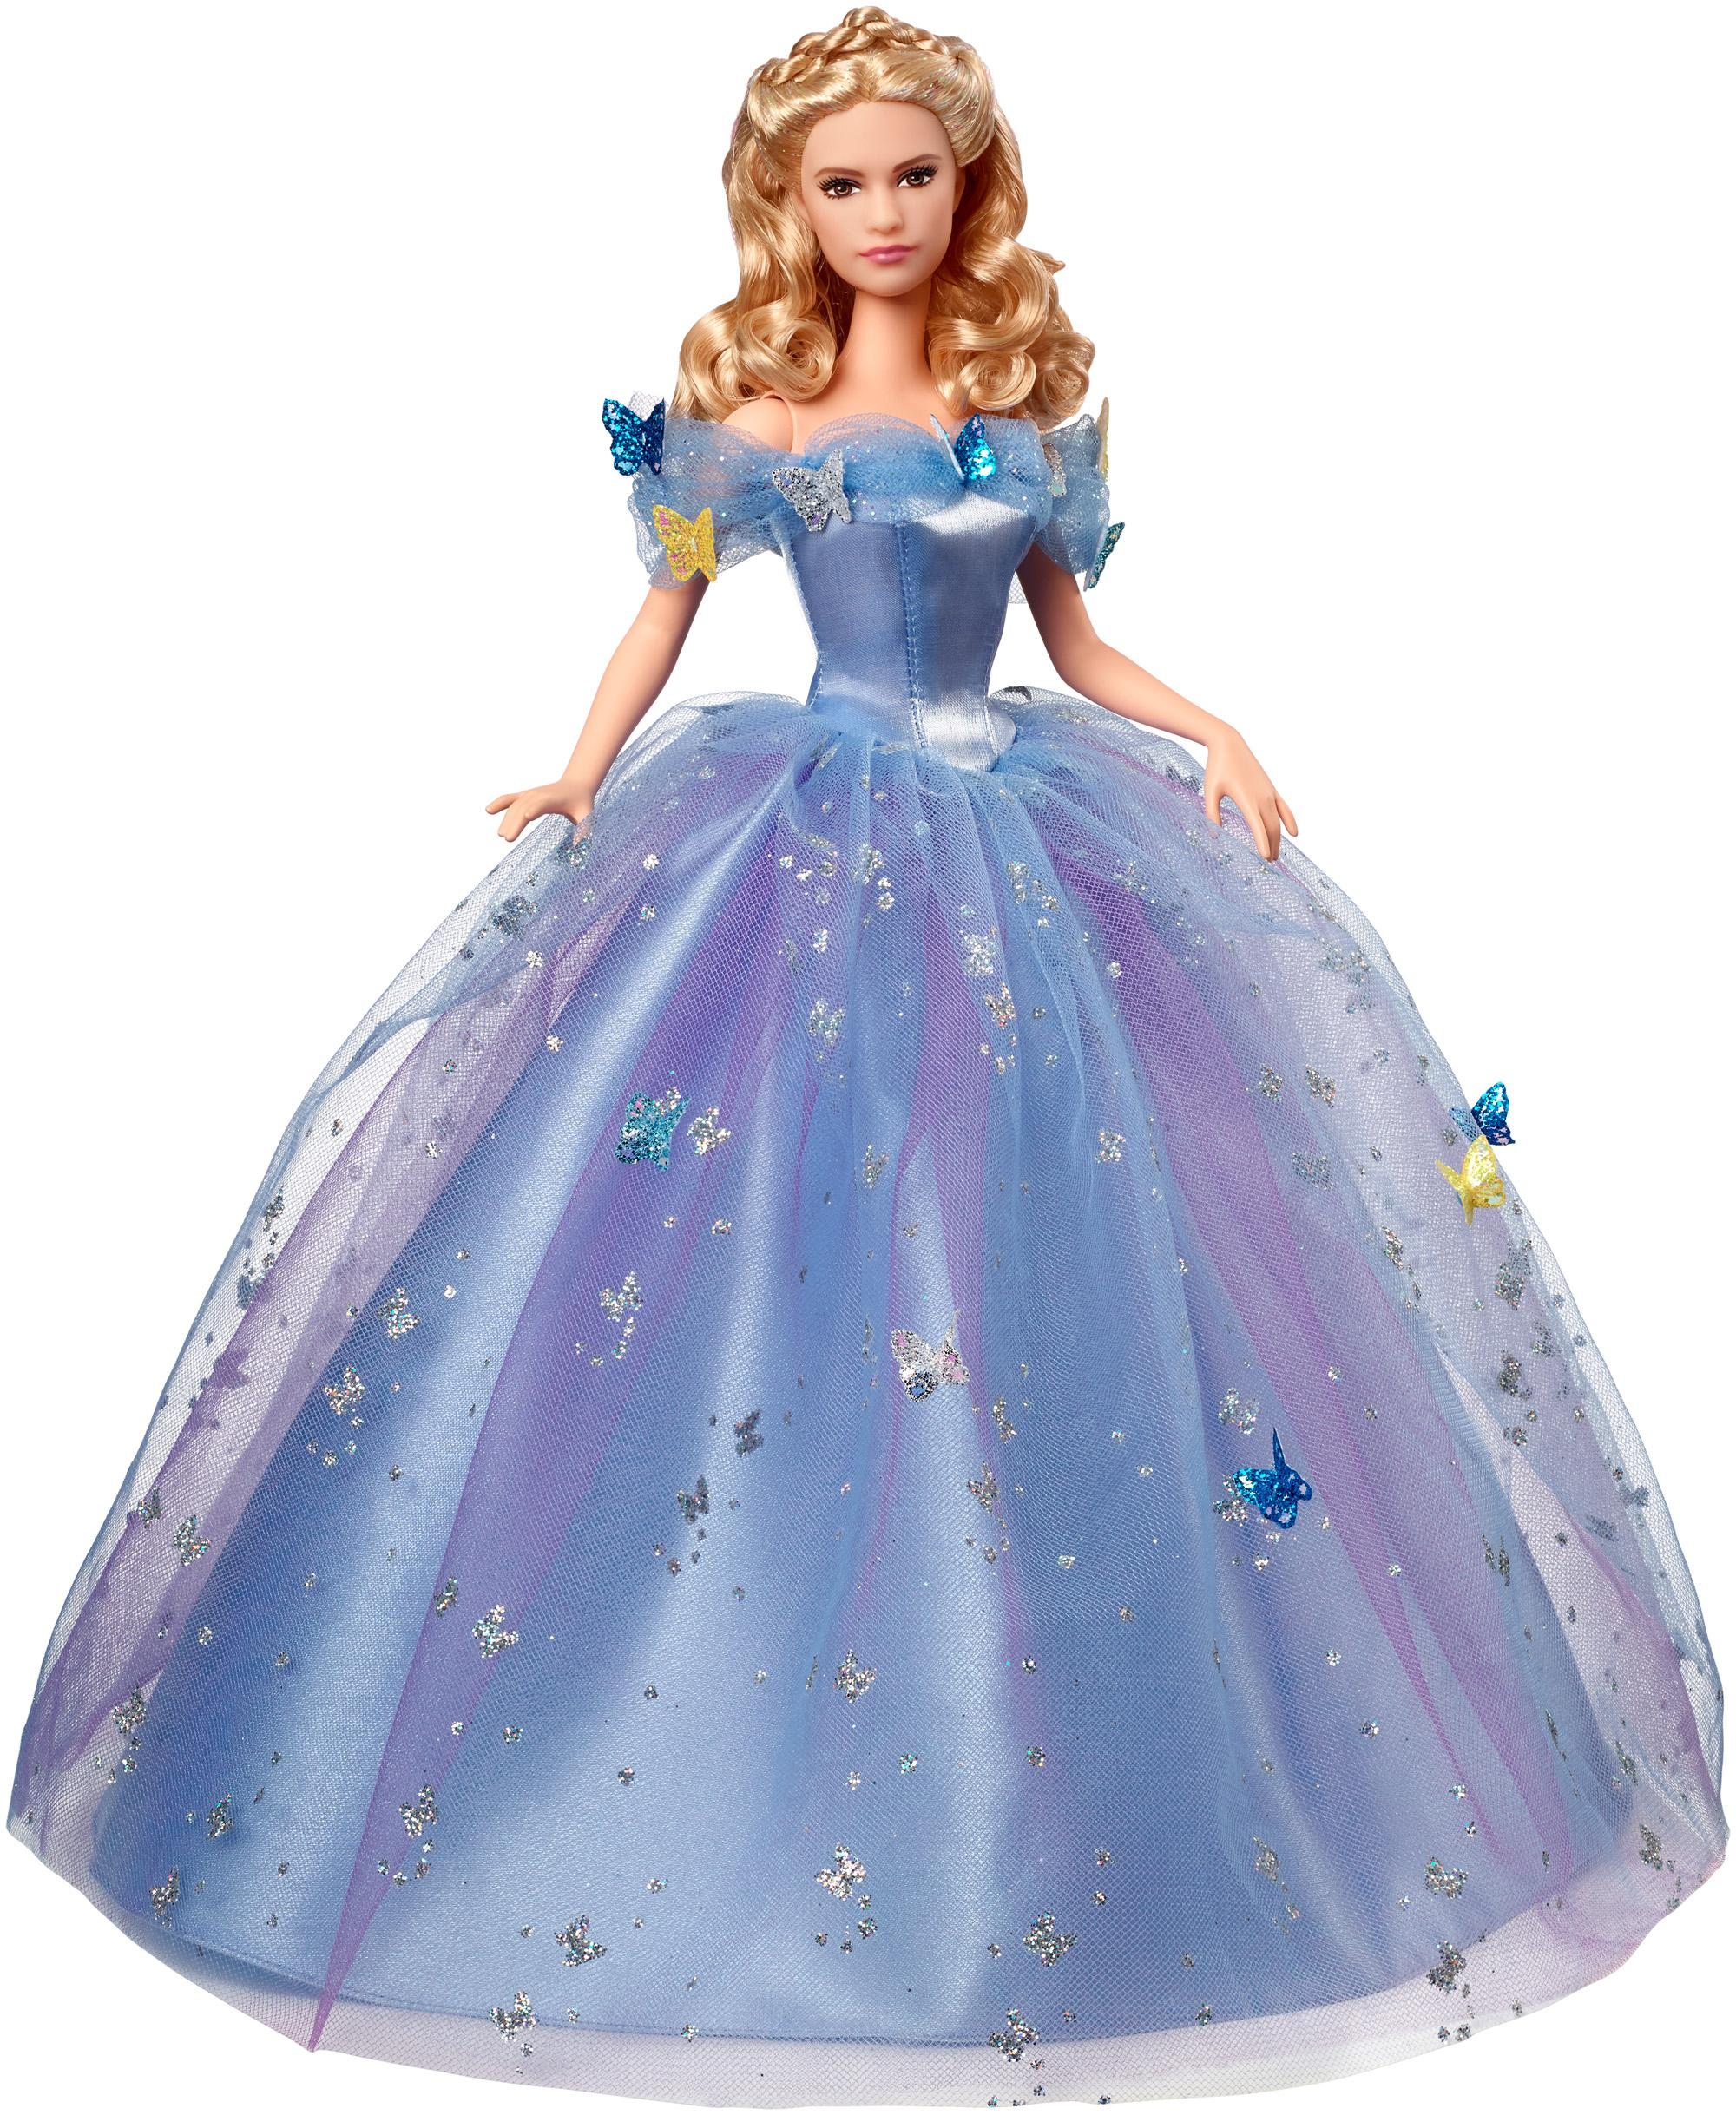 Cinderella Doll Enchanted Fairytales Charming With Accessories